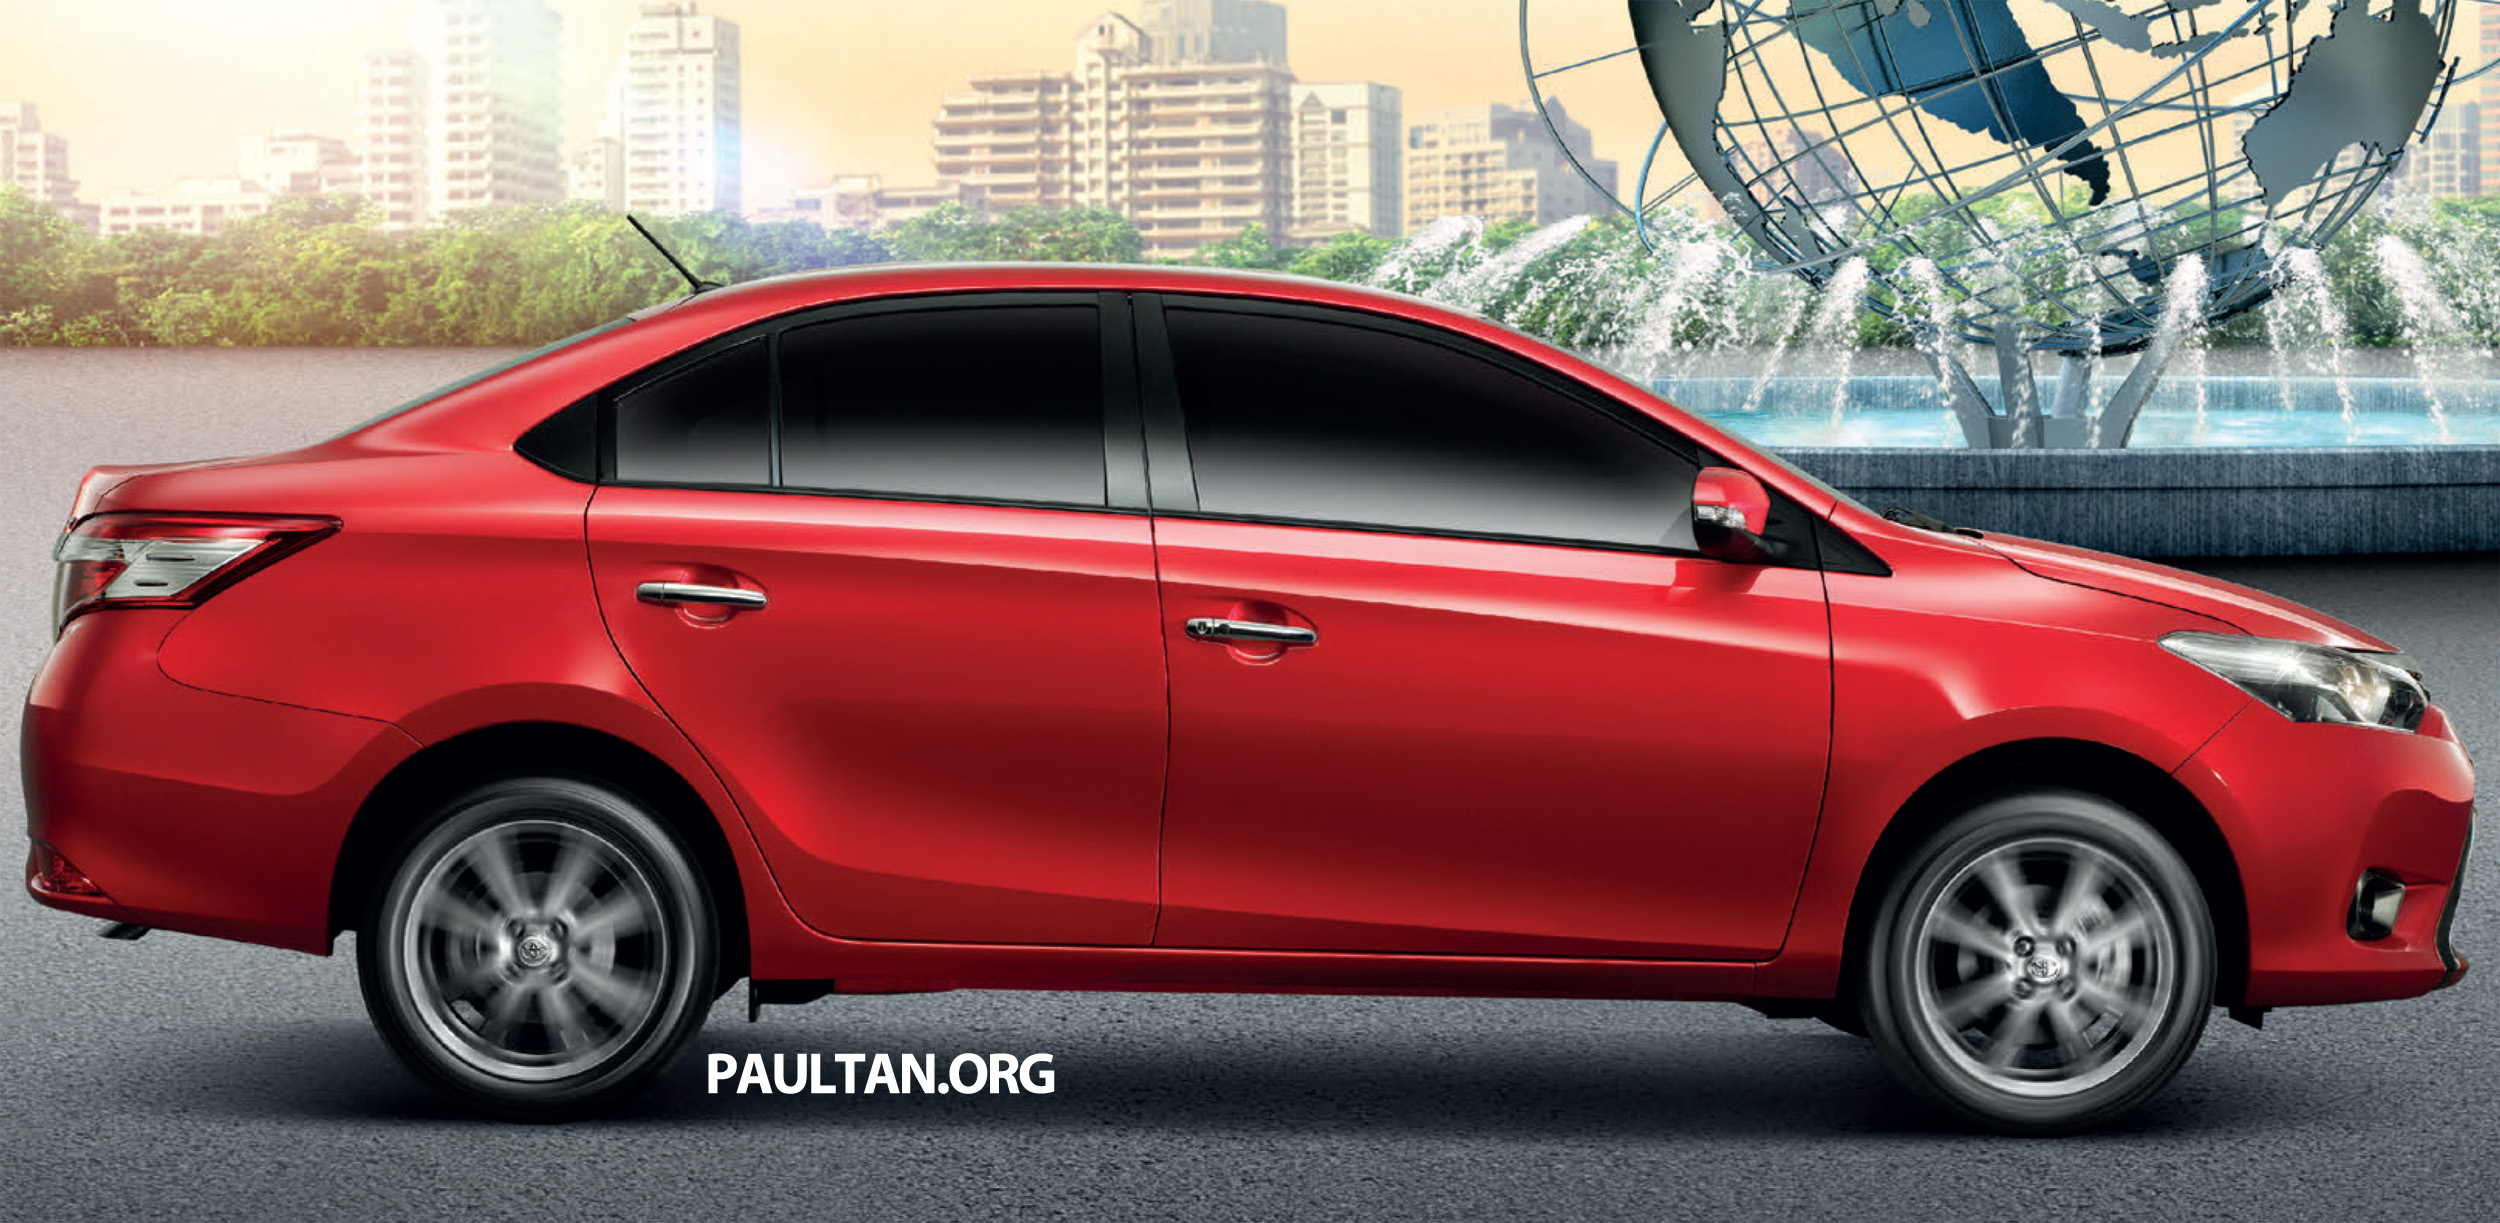 2013 Toyota Vios launched in Thailand – full details